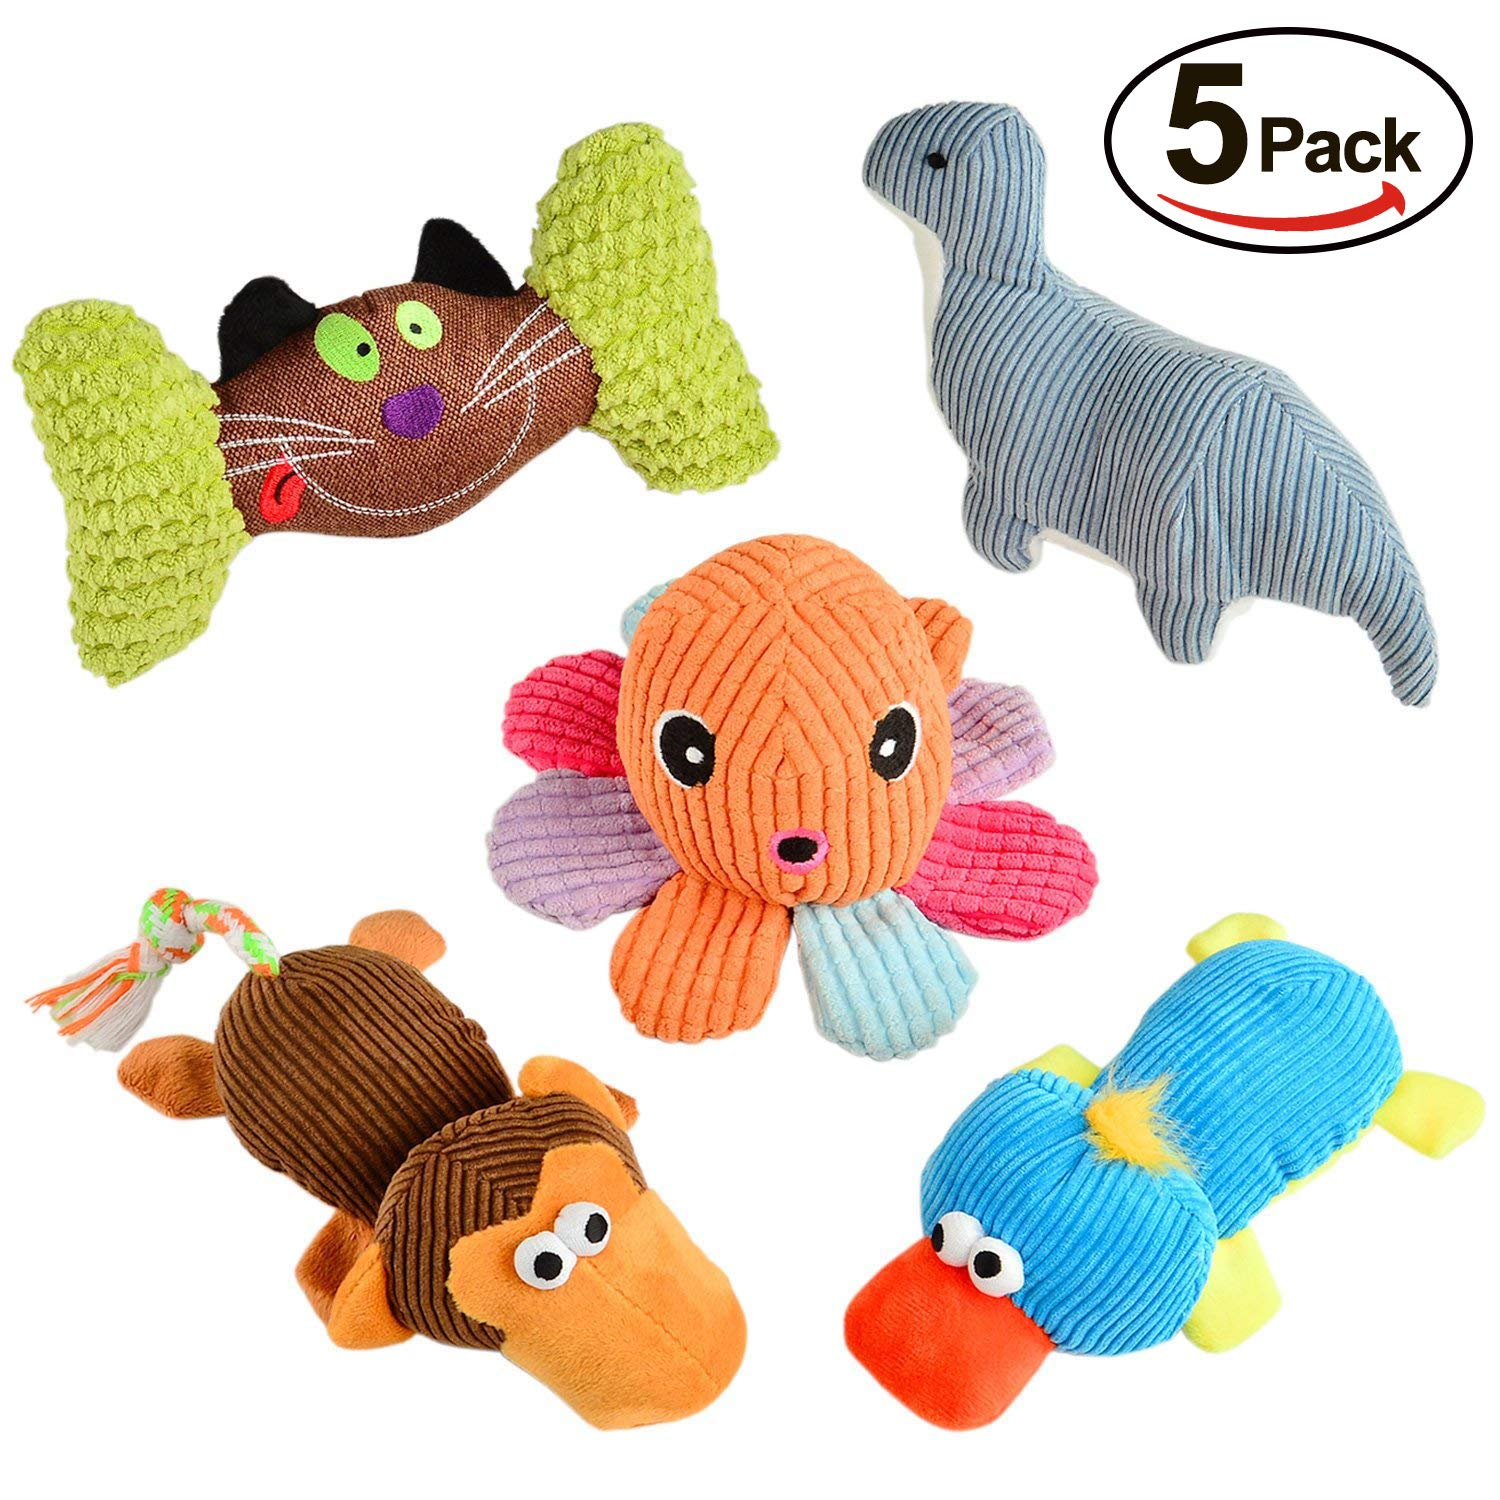 VVWEE Dog Squeaky Toys Plush, Durable Puppy Chew Toys Set, Soft Cute Small Dog Toy Stuffed Animal (5 pack)